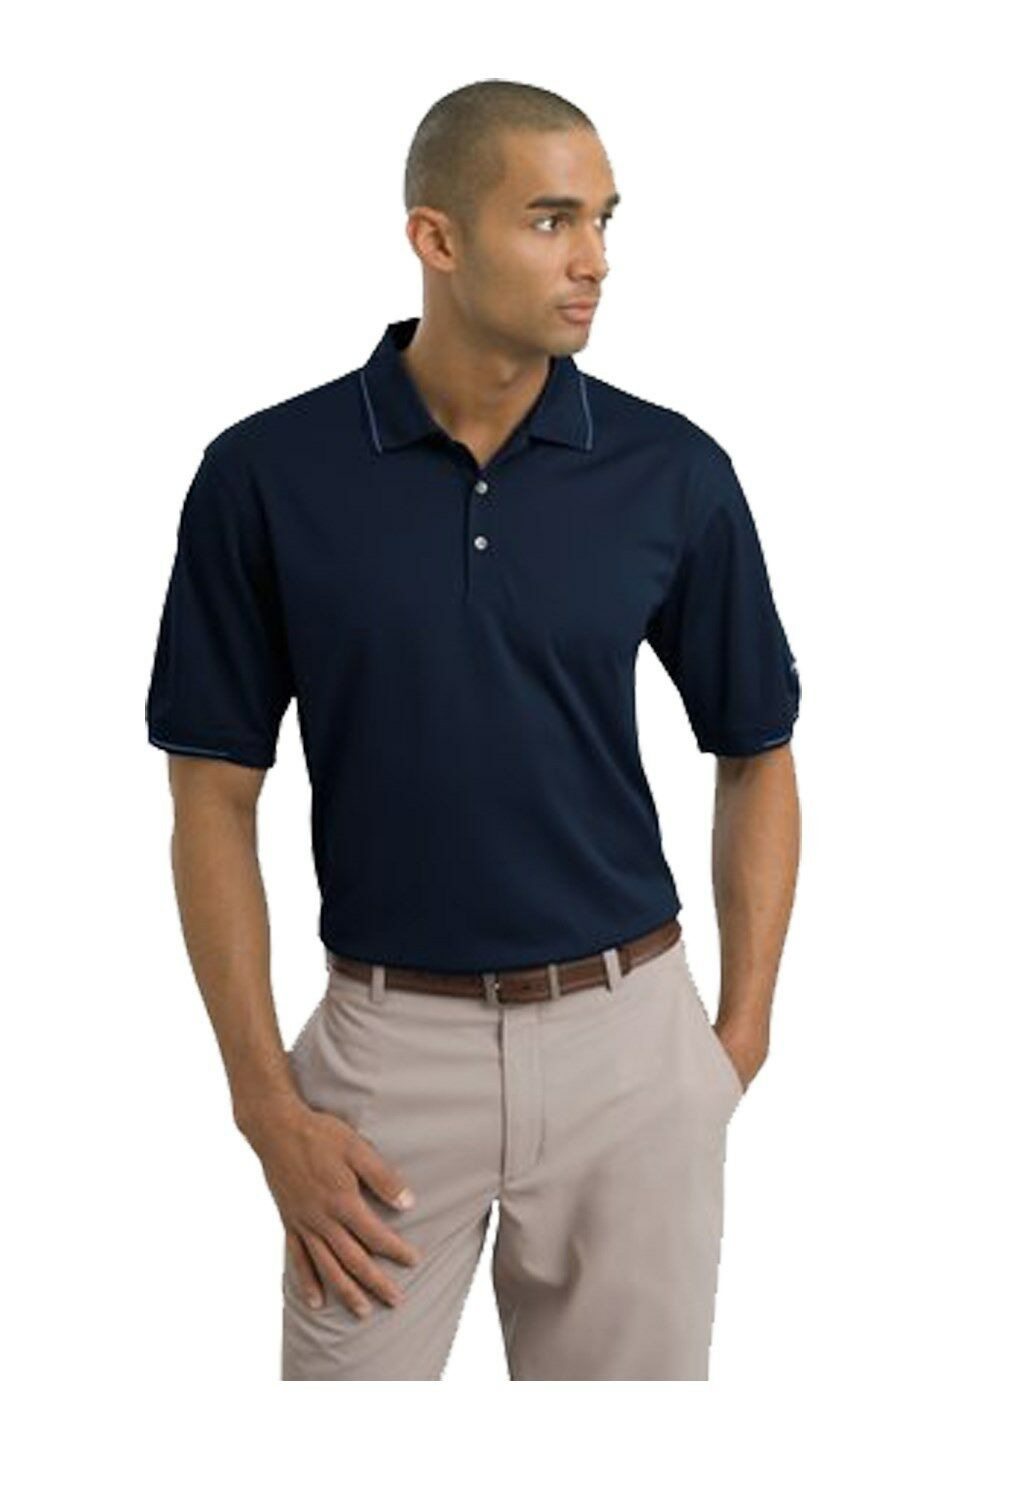 Nike Golf Mens Size S L Xl 3xl 4xl Dri Fit Polo Sport Shirts With